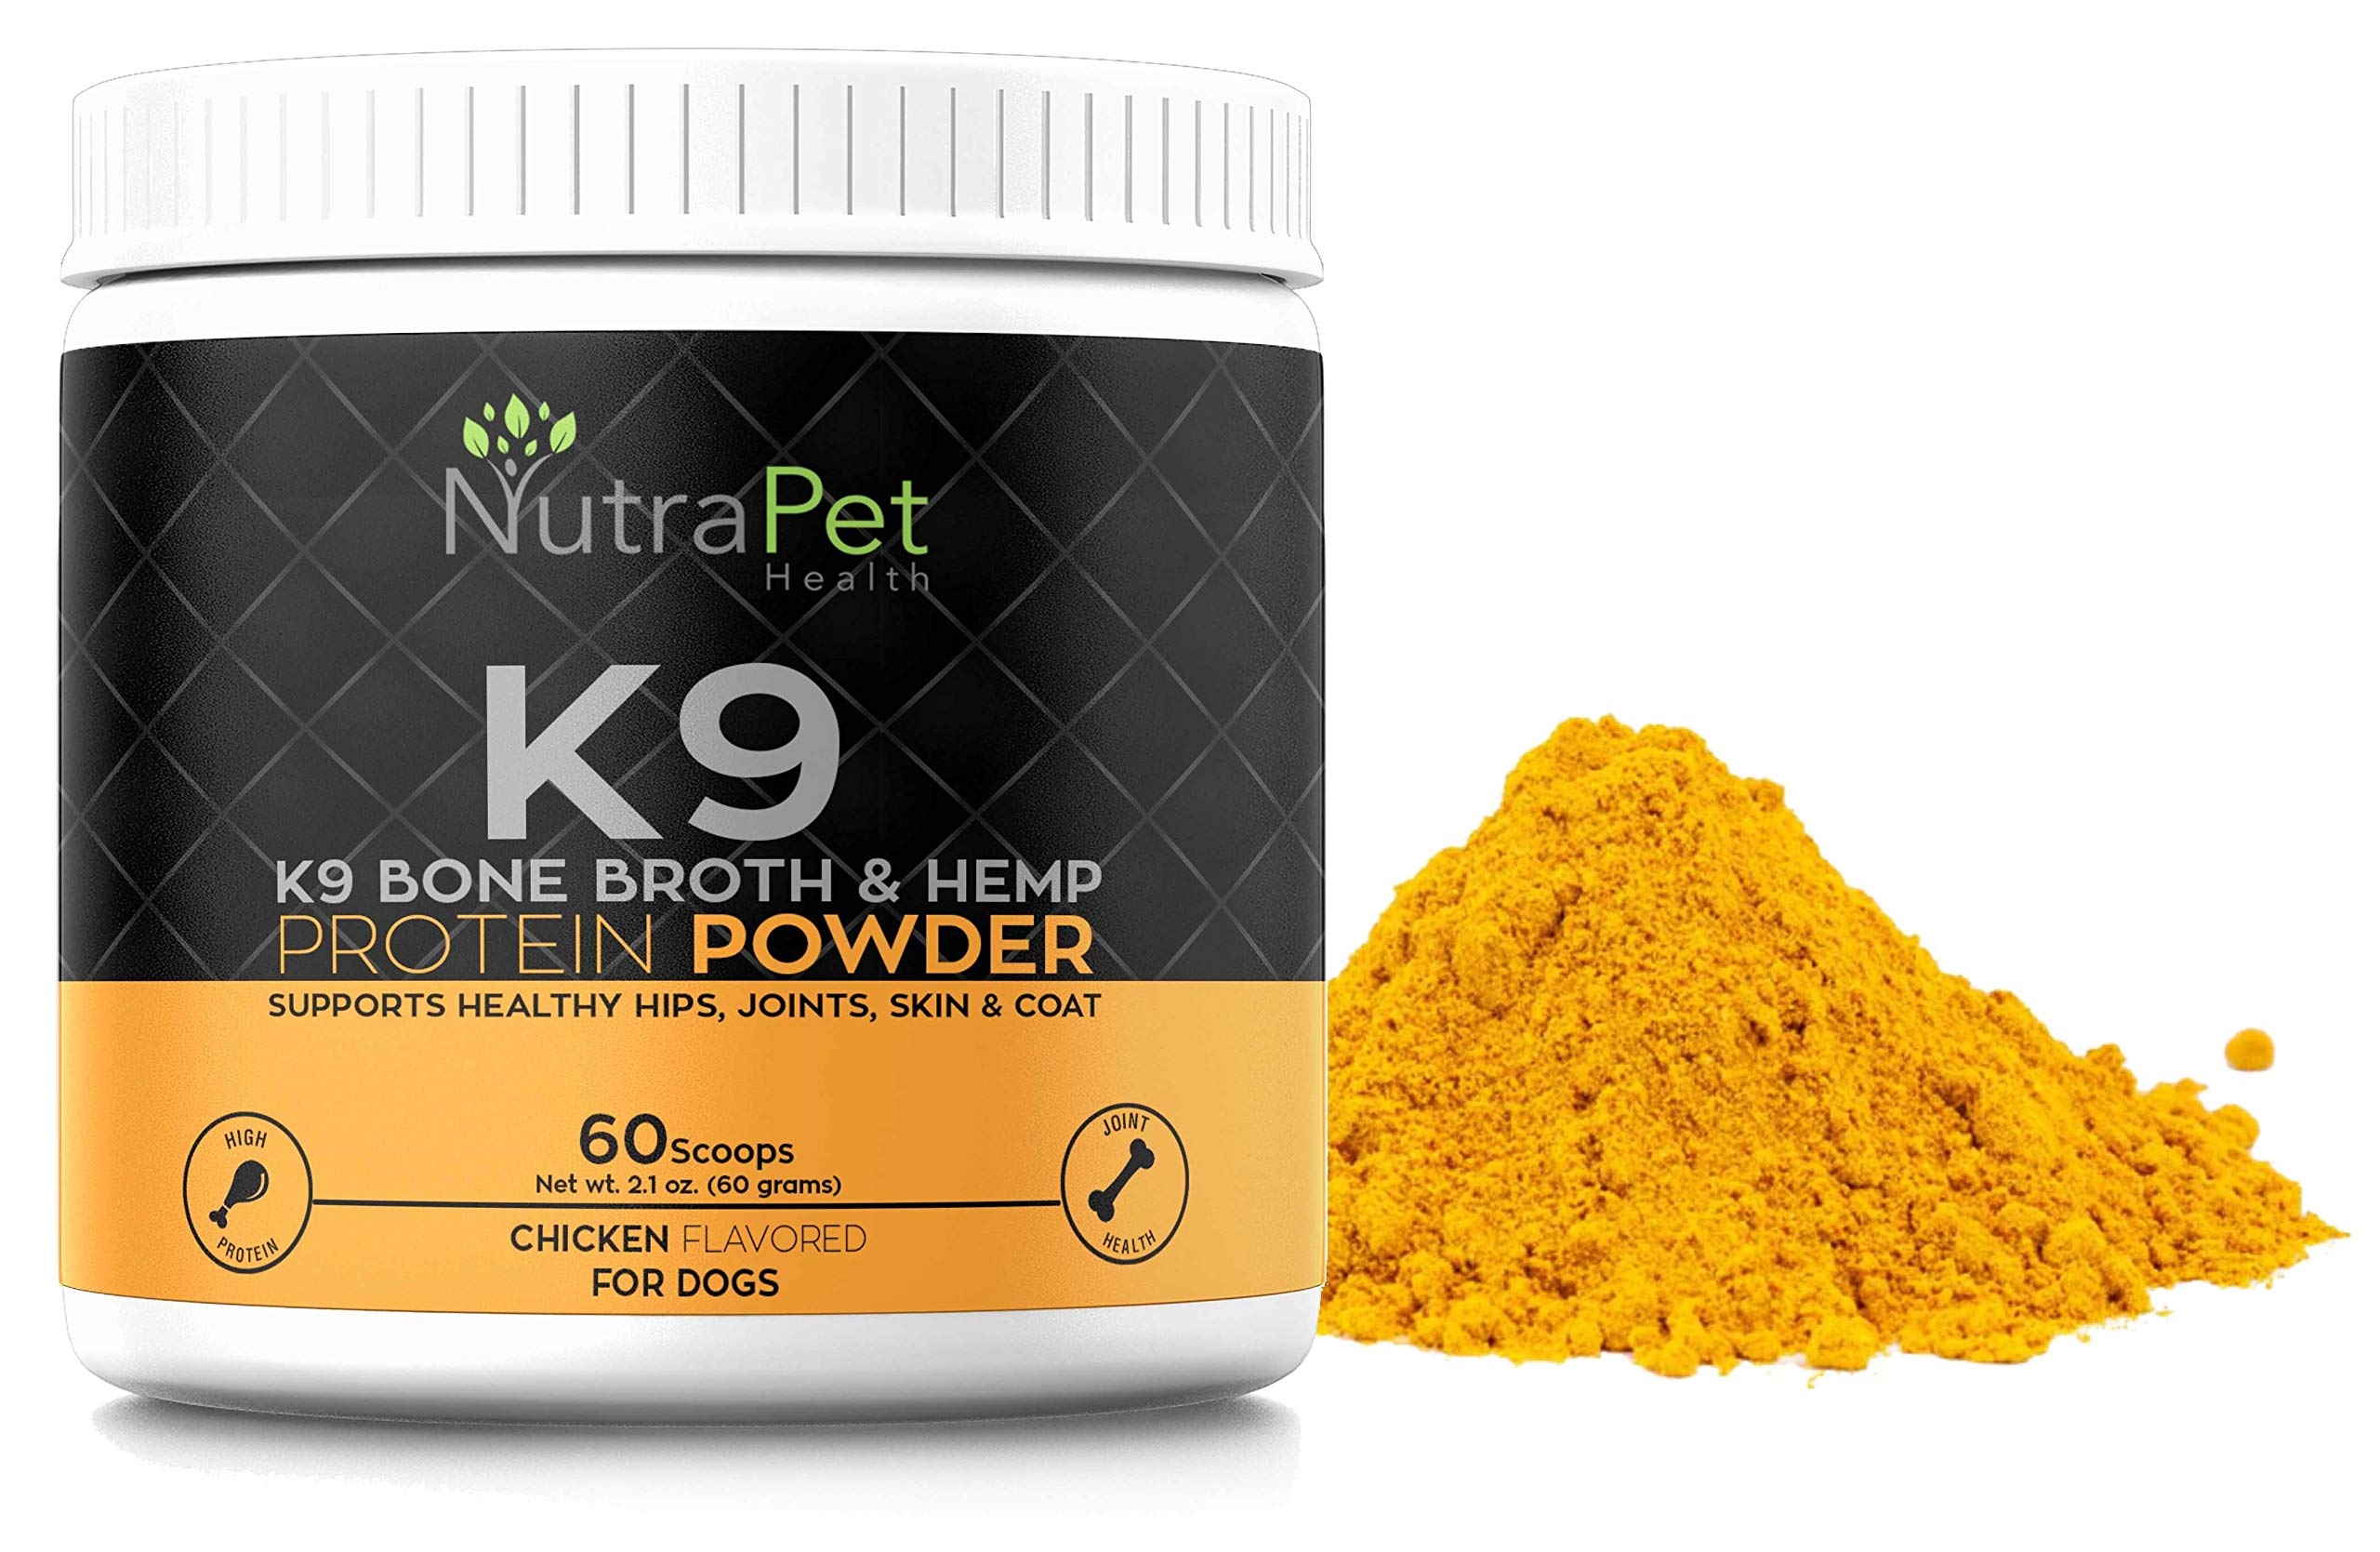 K9 Bone Broth Powder Concentrate Organic Turmeric Hemp Protein - Improves Gut Health, Allergies, Food Sensitivity & Inflammation Hip & Joint Arthritis Pain Relief - Digestive & Mobility